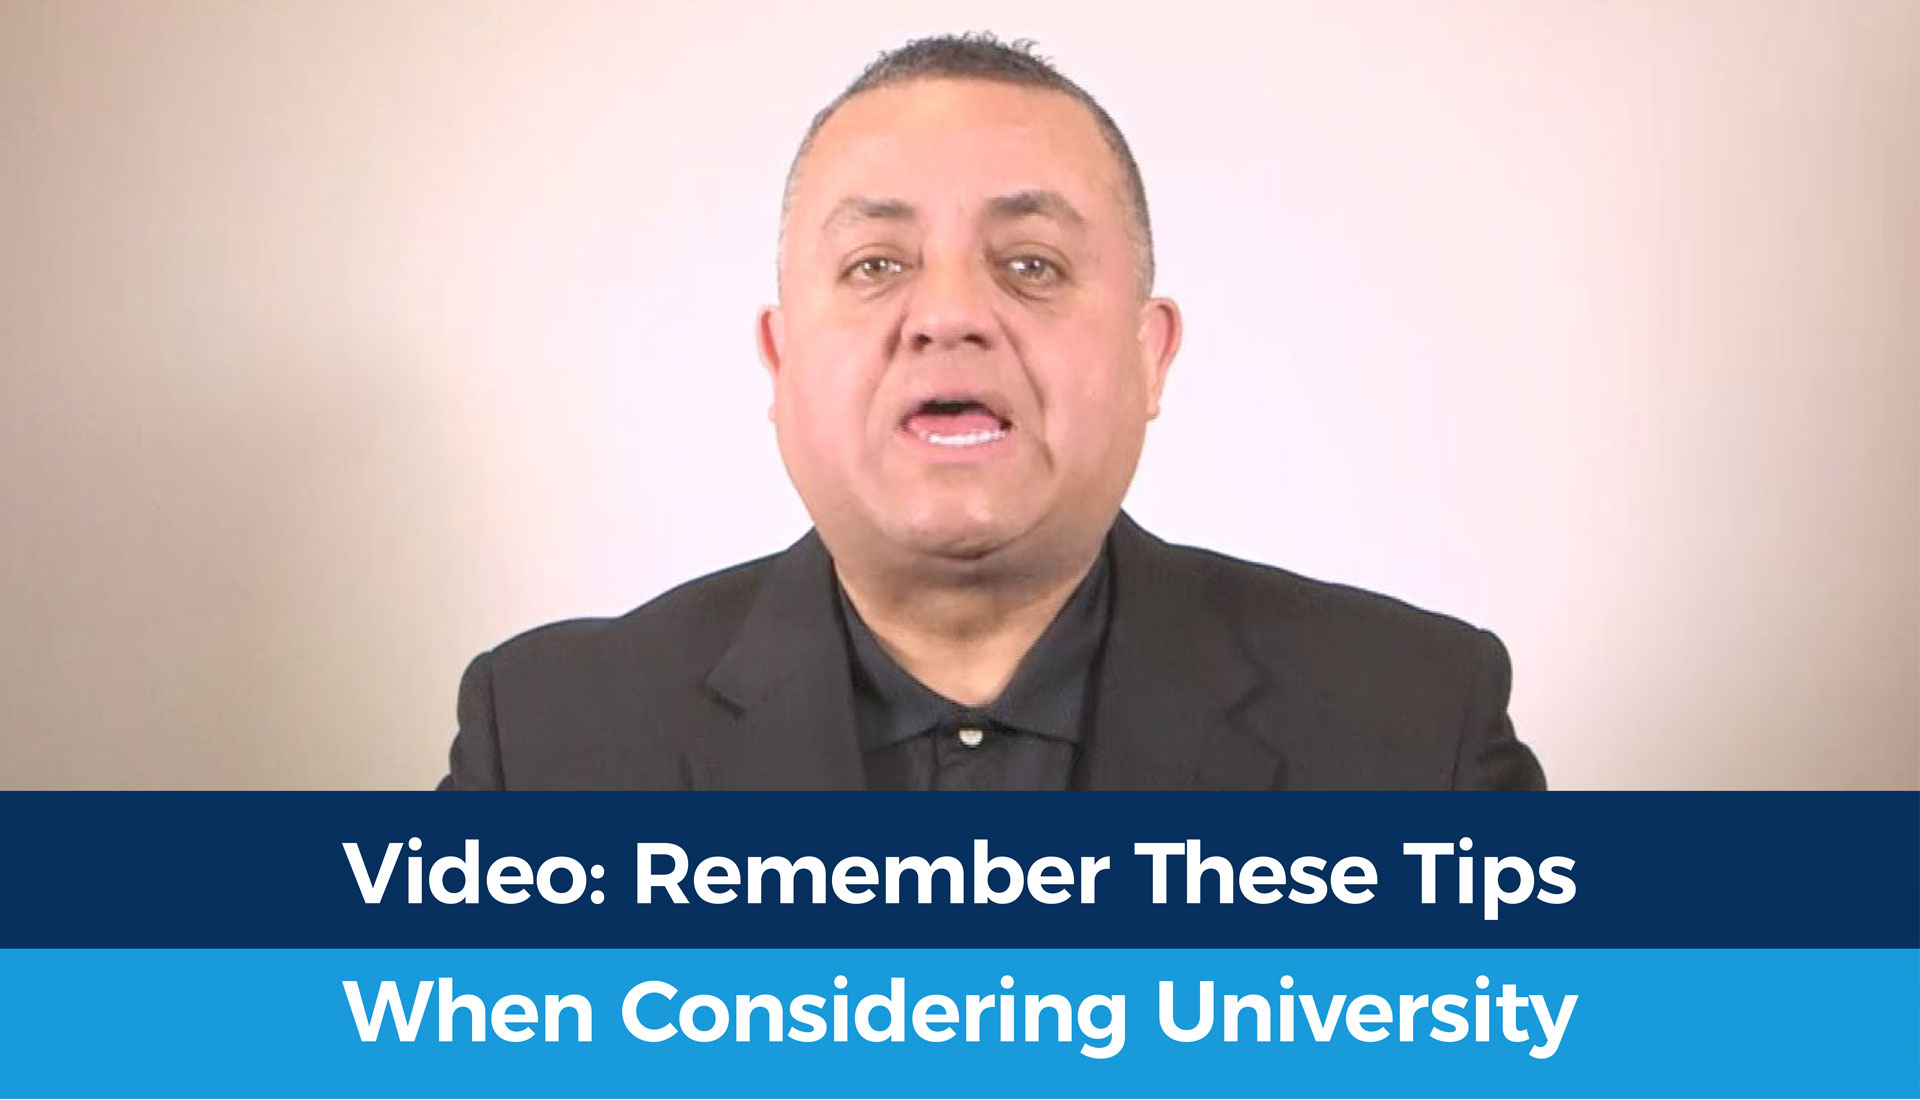 Tips to remember when considering university